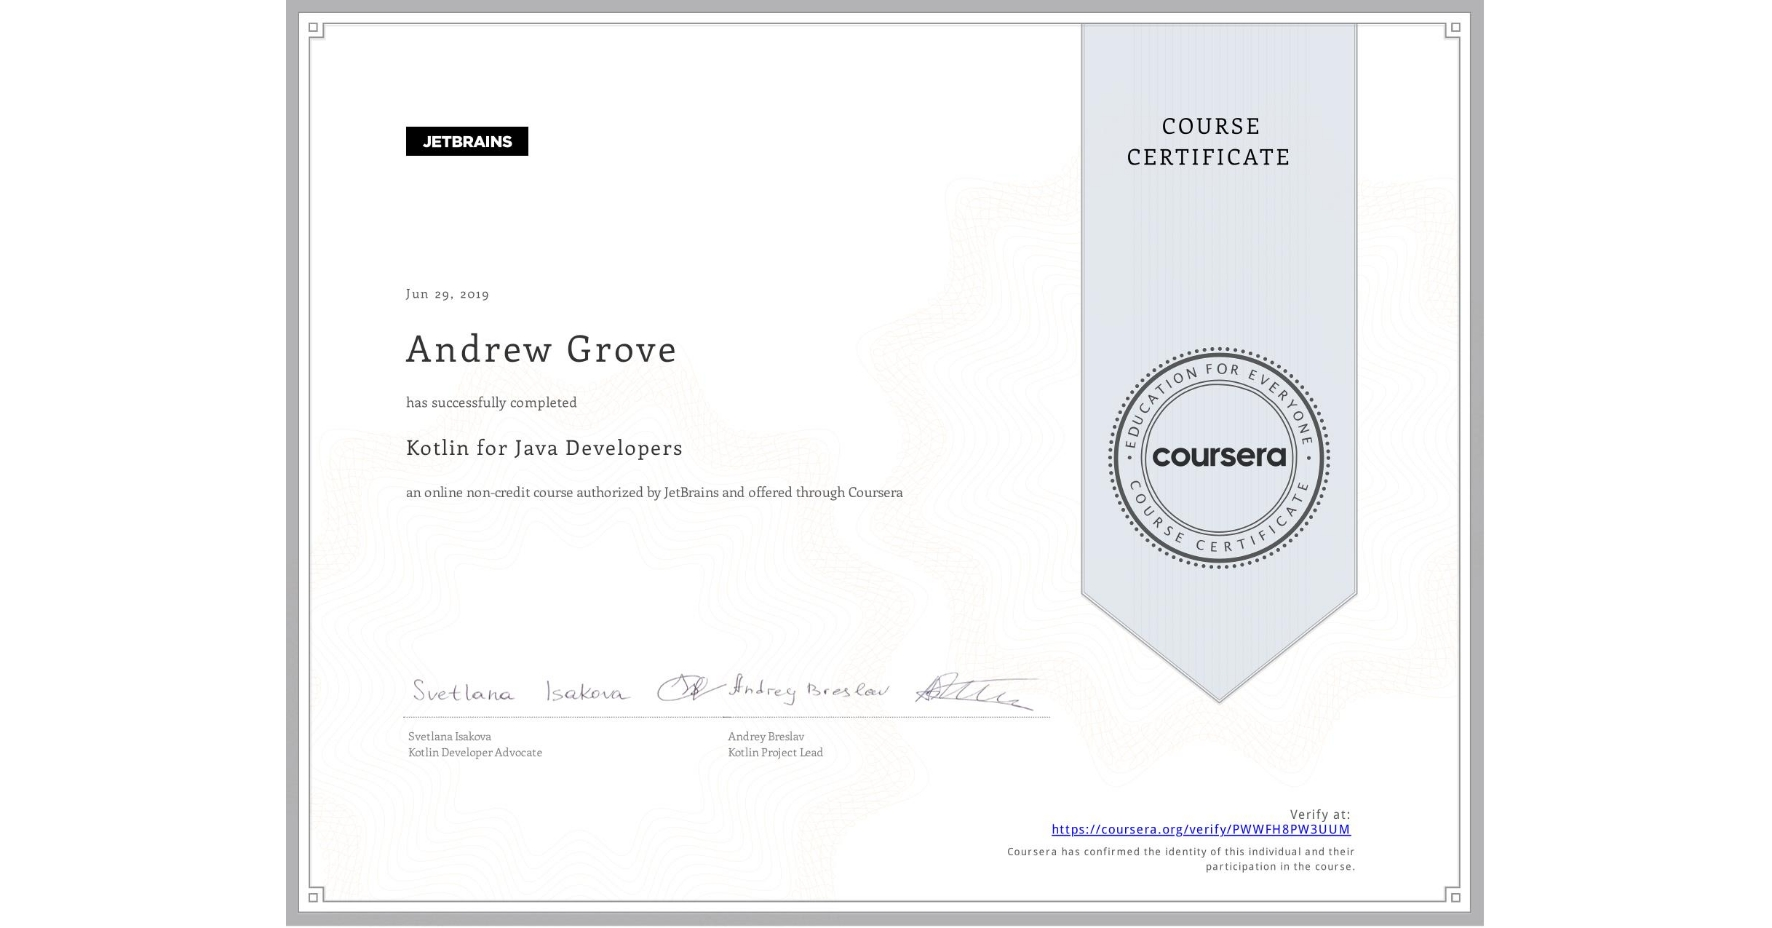 View certificate for Andrew Grove, Kotlin for Java Developers, an online non-credit course authorized by JetBrains and offered through Coursera